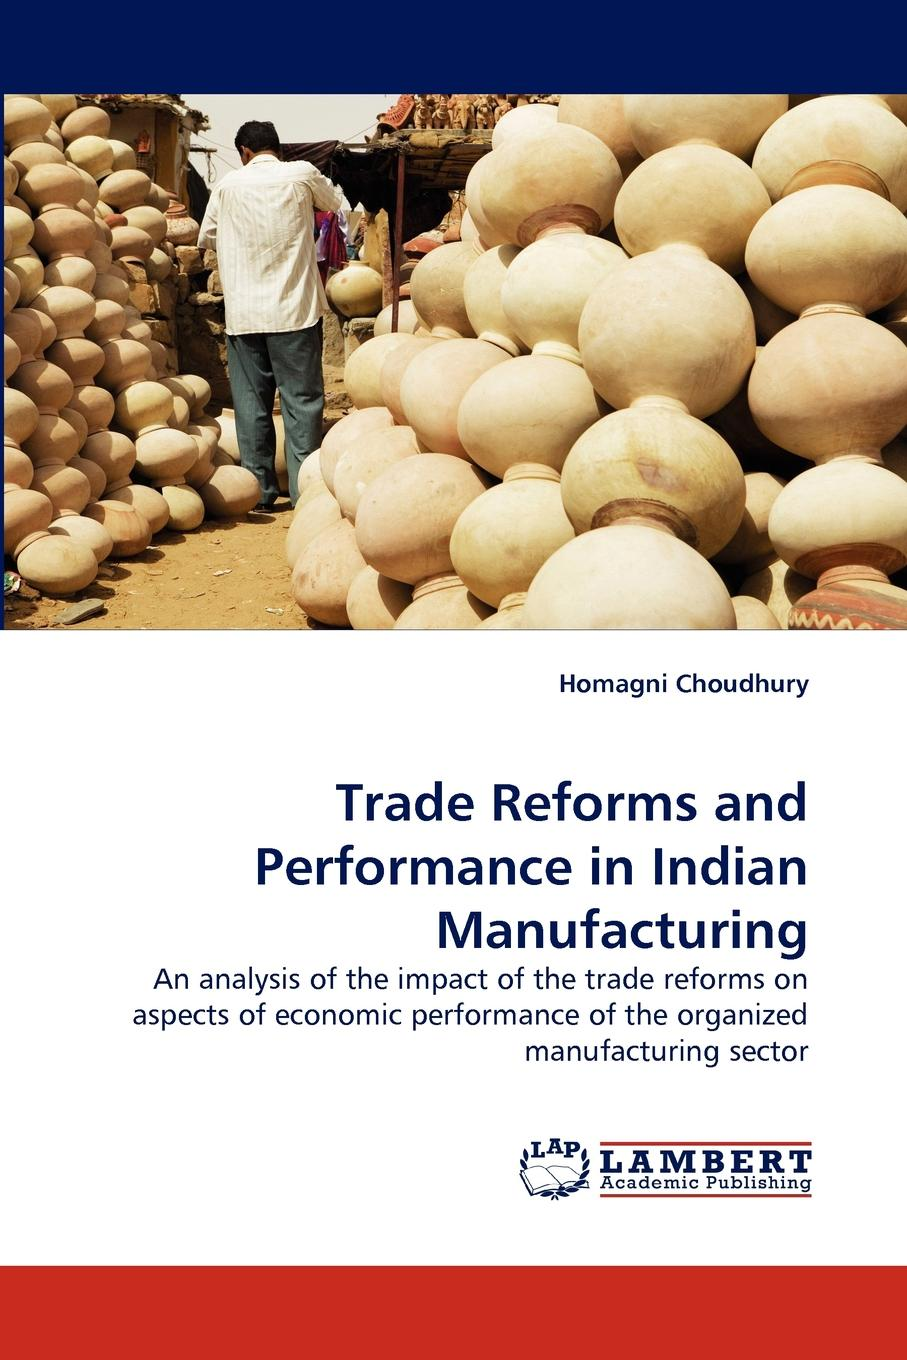 Homagni Choudhury Trade Reforms and Performance in Indian Manufacturing